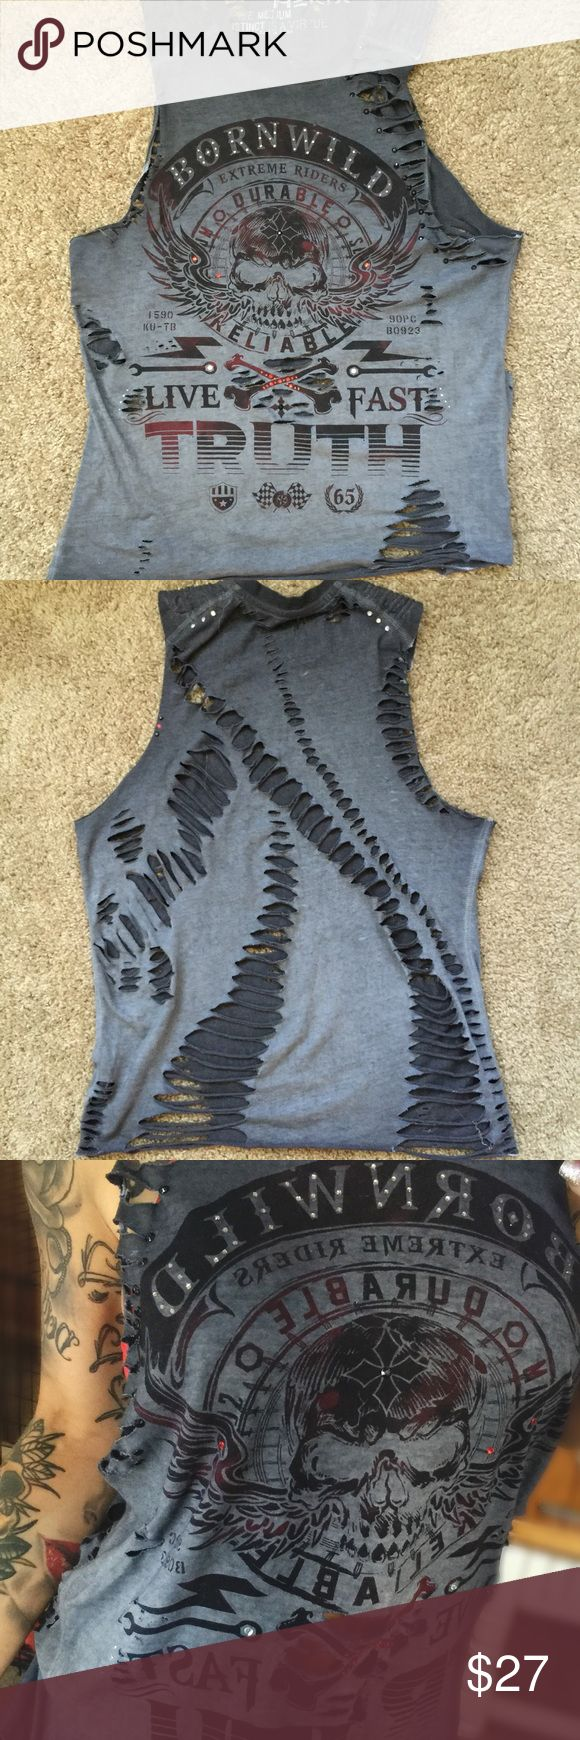 """NWOT Helix custom cut up revamped tshirt this Helix tank is brand new without tags. it's gray and black gradient and says """"Born Wild"""" and """"Live Fast"""" on the front. it was cut up and embellished by me, so there is only ONE LIKE IT. completely custom. CUSTOM REVAMP'D LIFE CLOTHING! SIZE MEDIUM/LARGE. tags: #helix #affliction #buckle #embellished  Tops Tank Tops"""